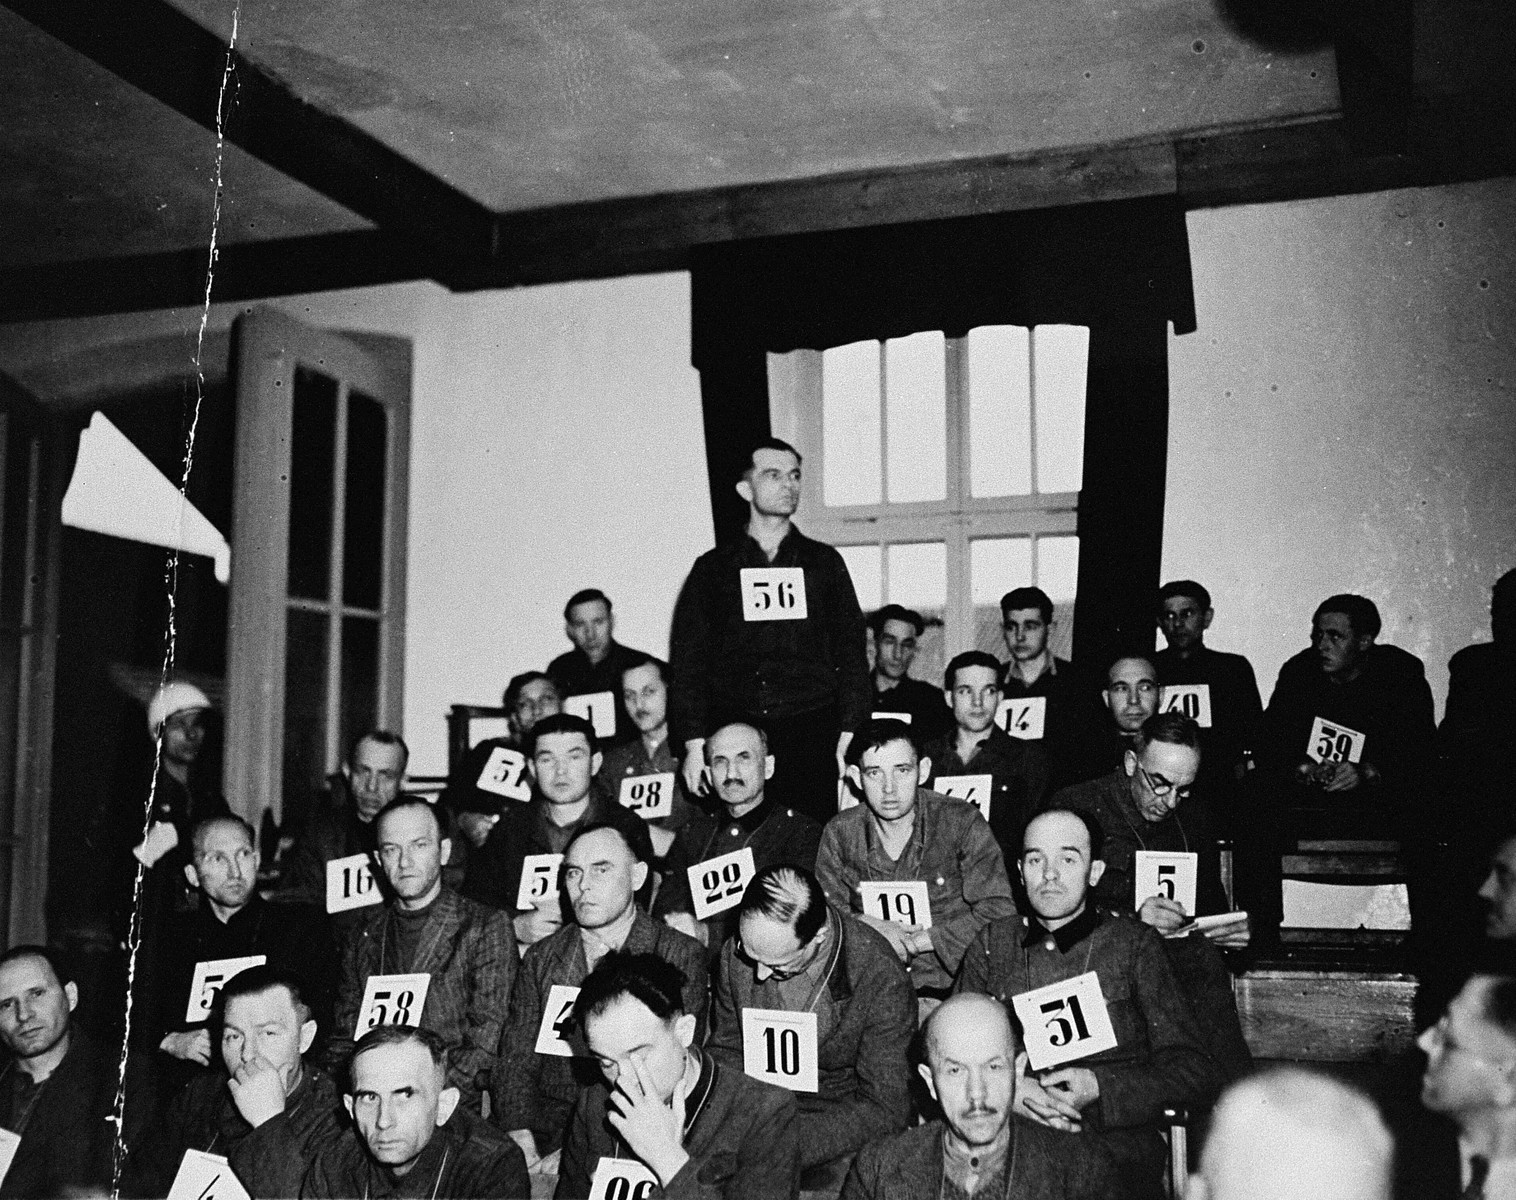 Former SS-Hauptsturmfuehrer Doctor Willi Jobst, a defendant at the trial of 61 former camp personnel and prisoners from Mauthausen, stands in his place in the defendants' dock.  Dr. Jobst was camp physician of the Ebensee concentration camp.  Jobst was convicted and sentenced to death on May 13, 1946.